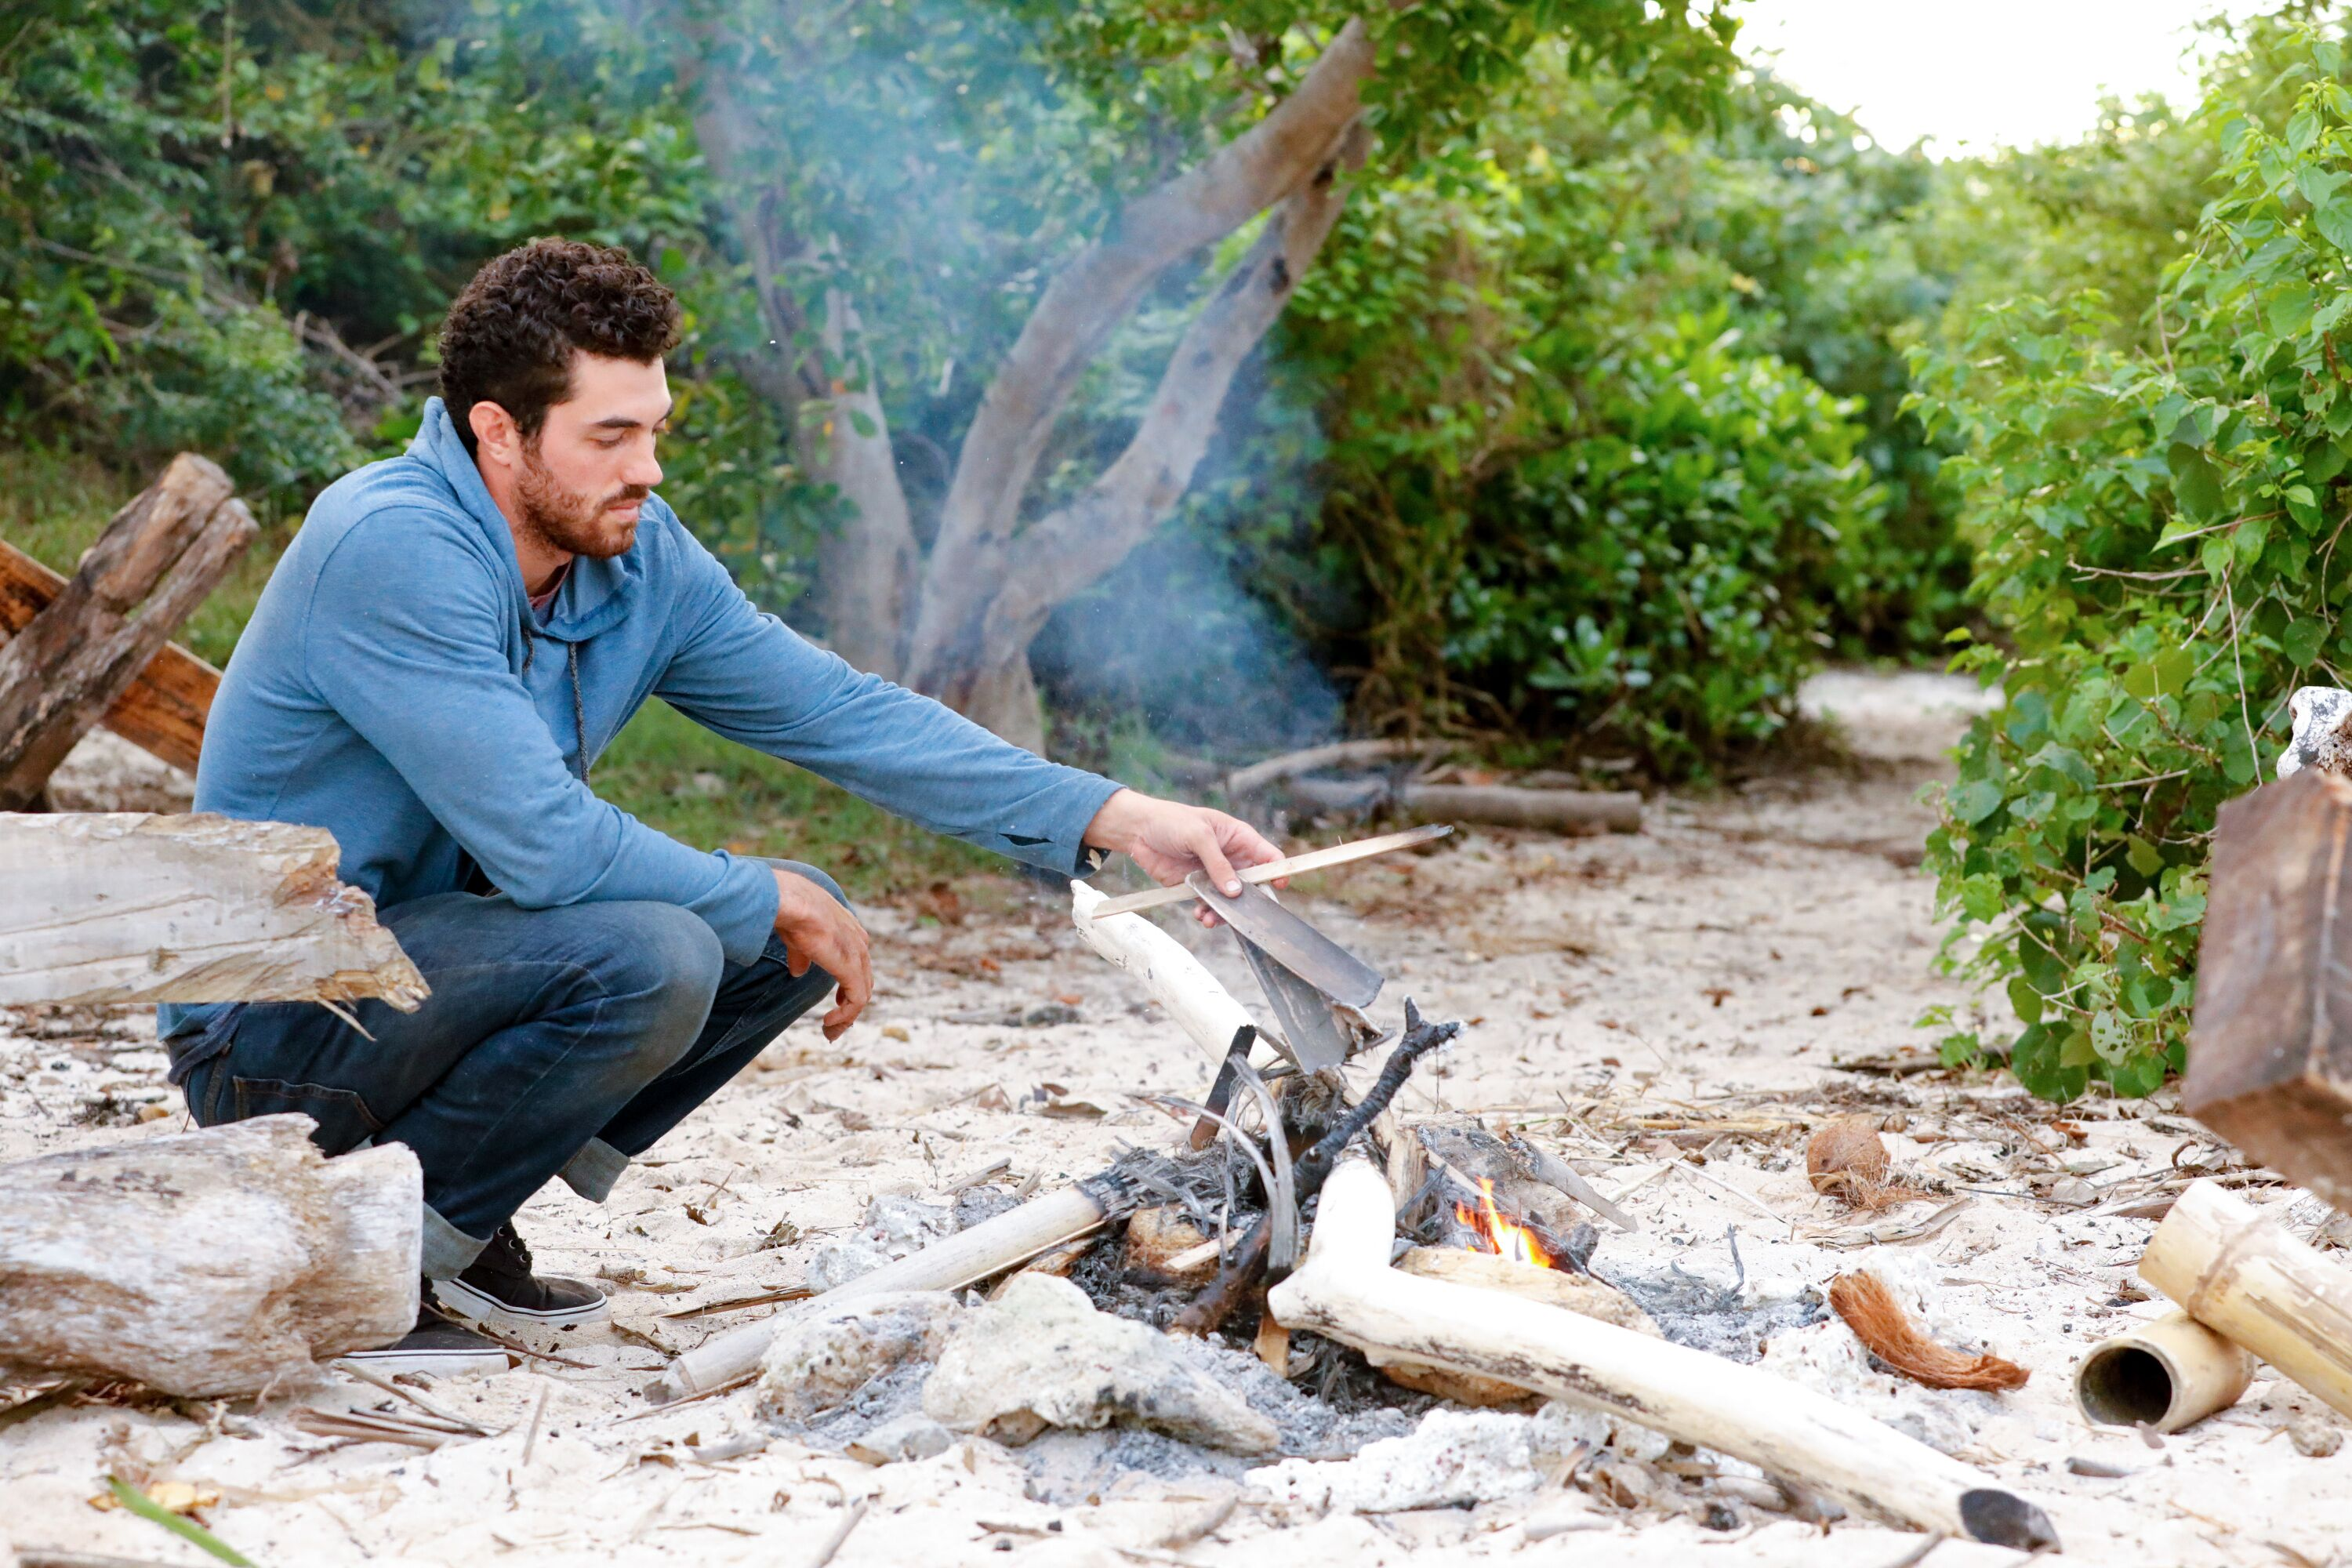 Survivor Edge of Extinction: Was the fire-making decision a difficult choice?